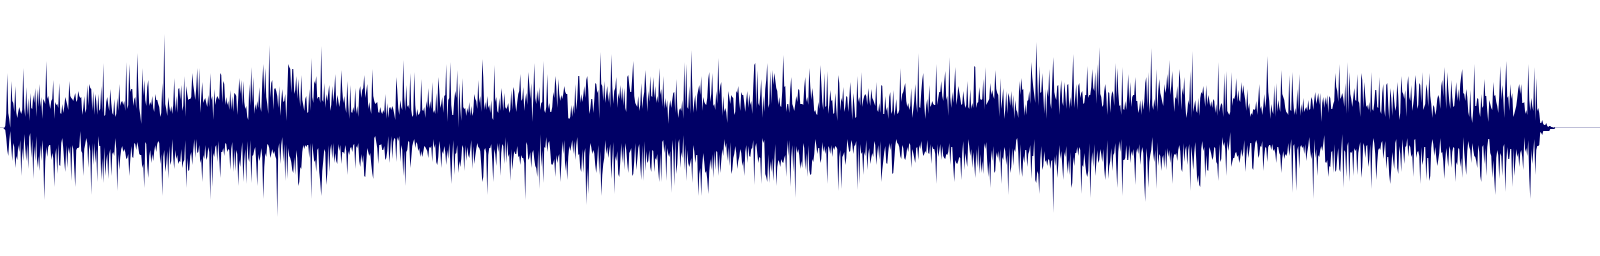 waveform of track #150052